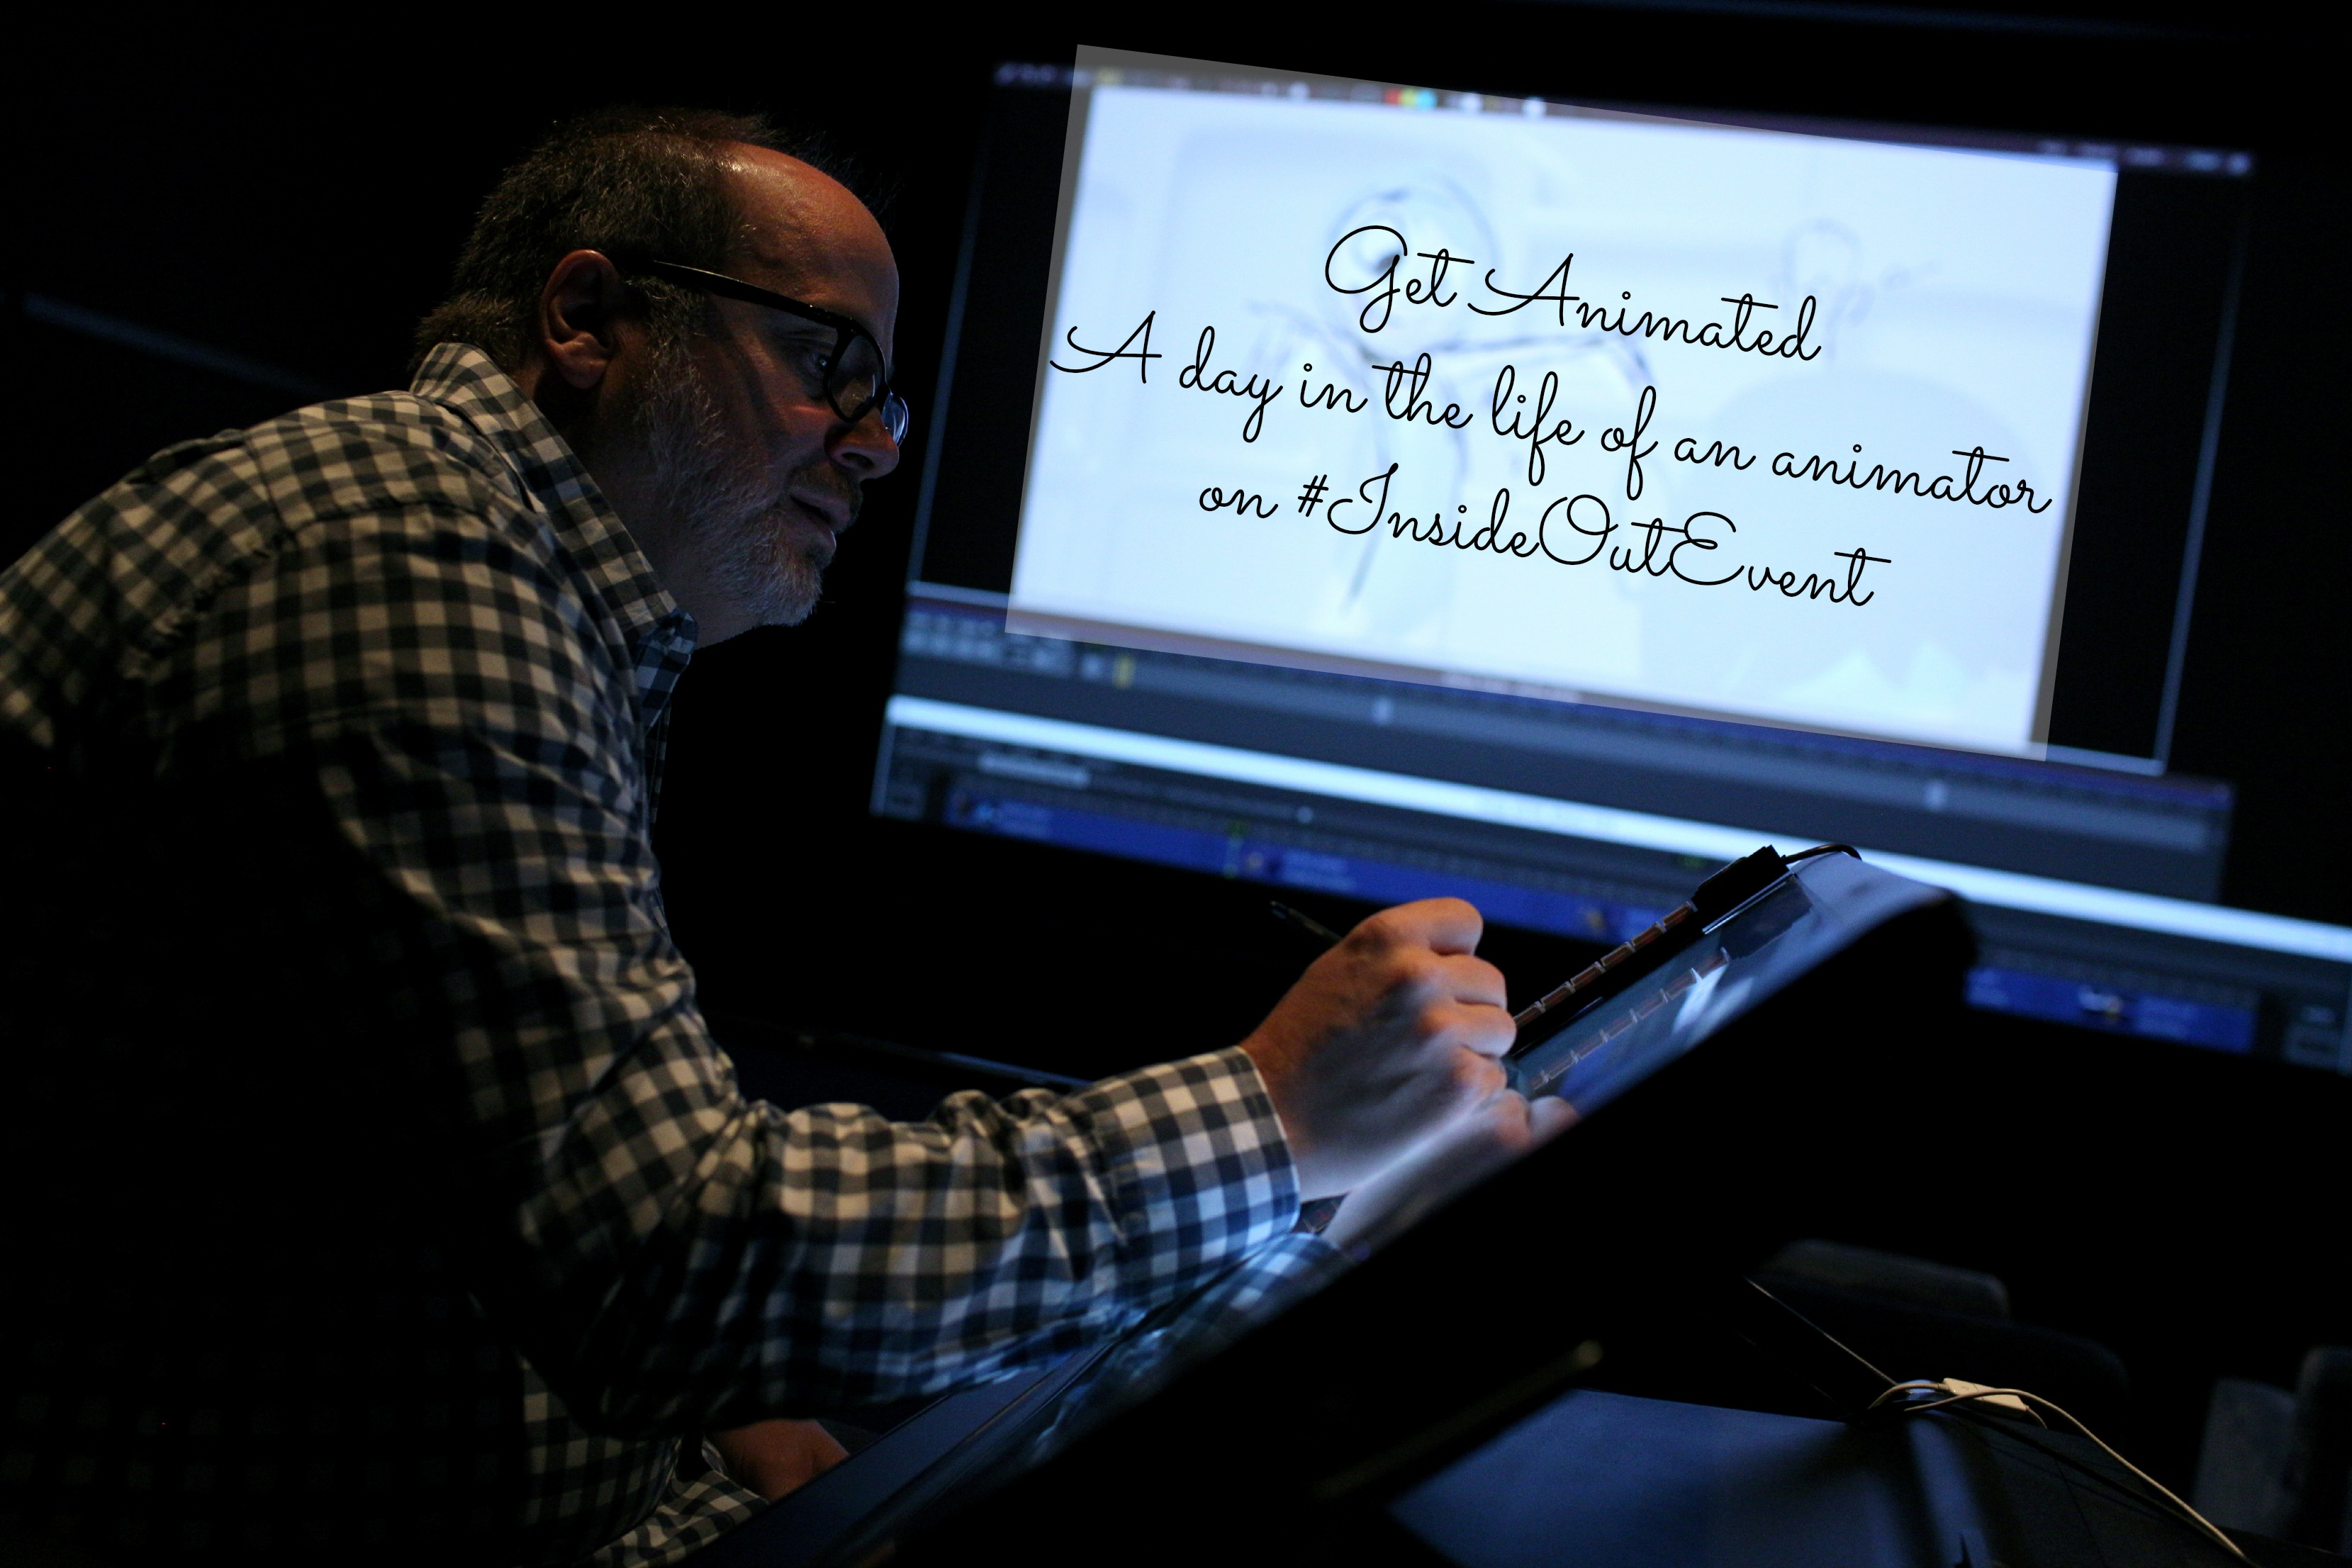 Get Animated – A day in the Life of an Animator on #InsideOutEvent